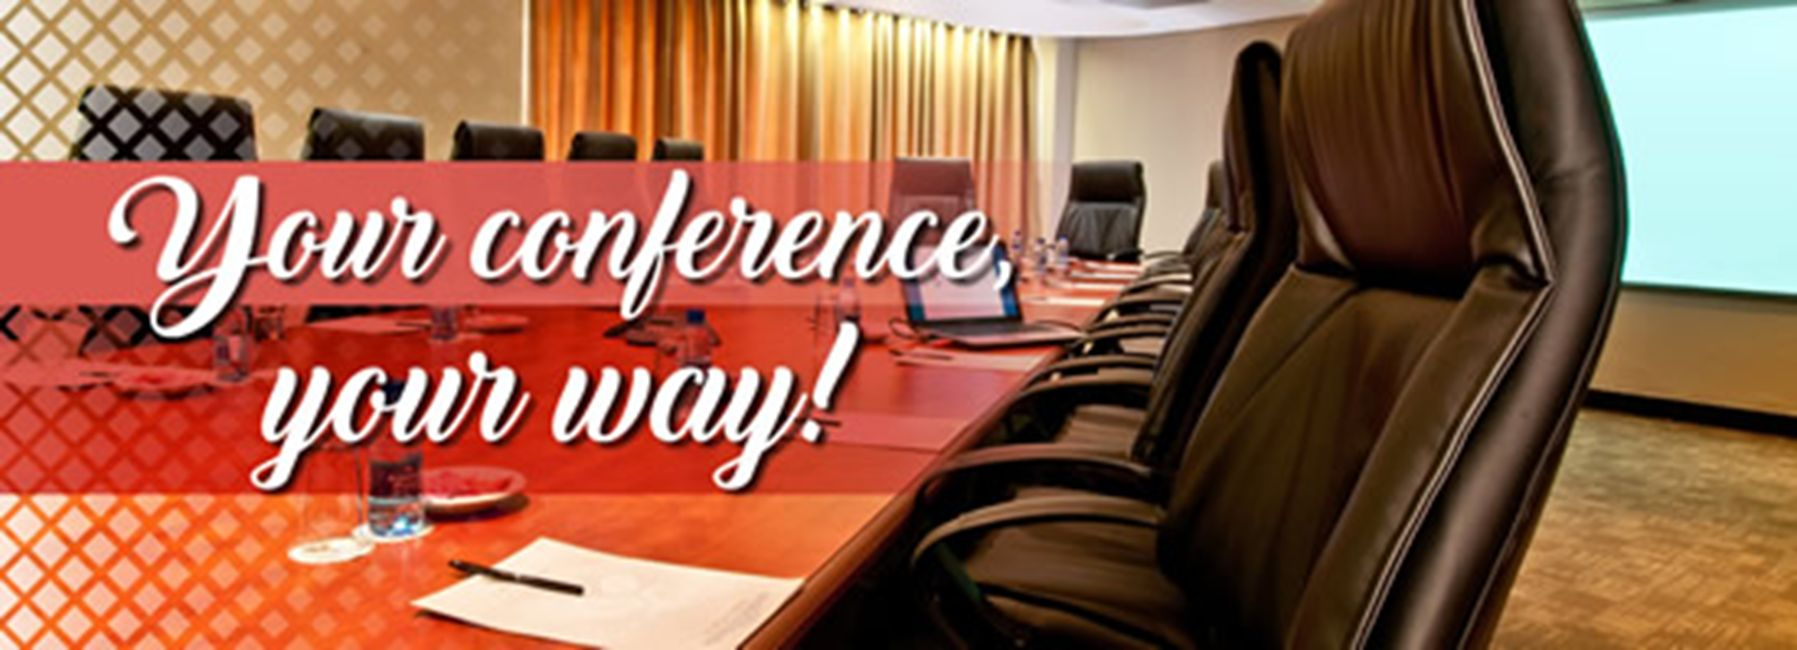 Conferencing at Forever Resorts, Lodges, Hotels and Retreats